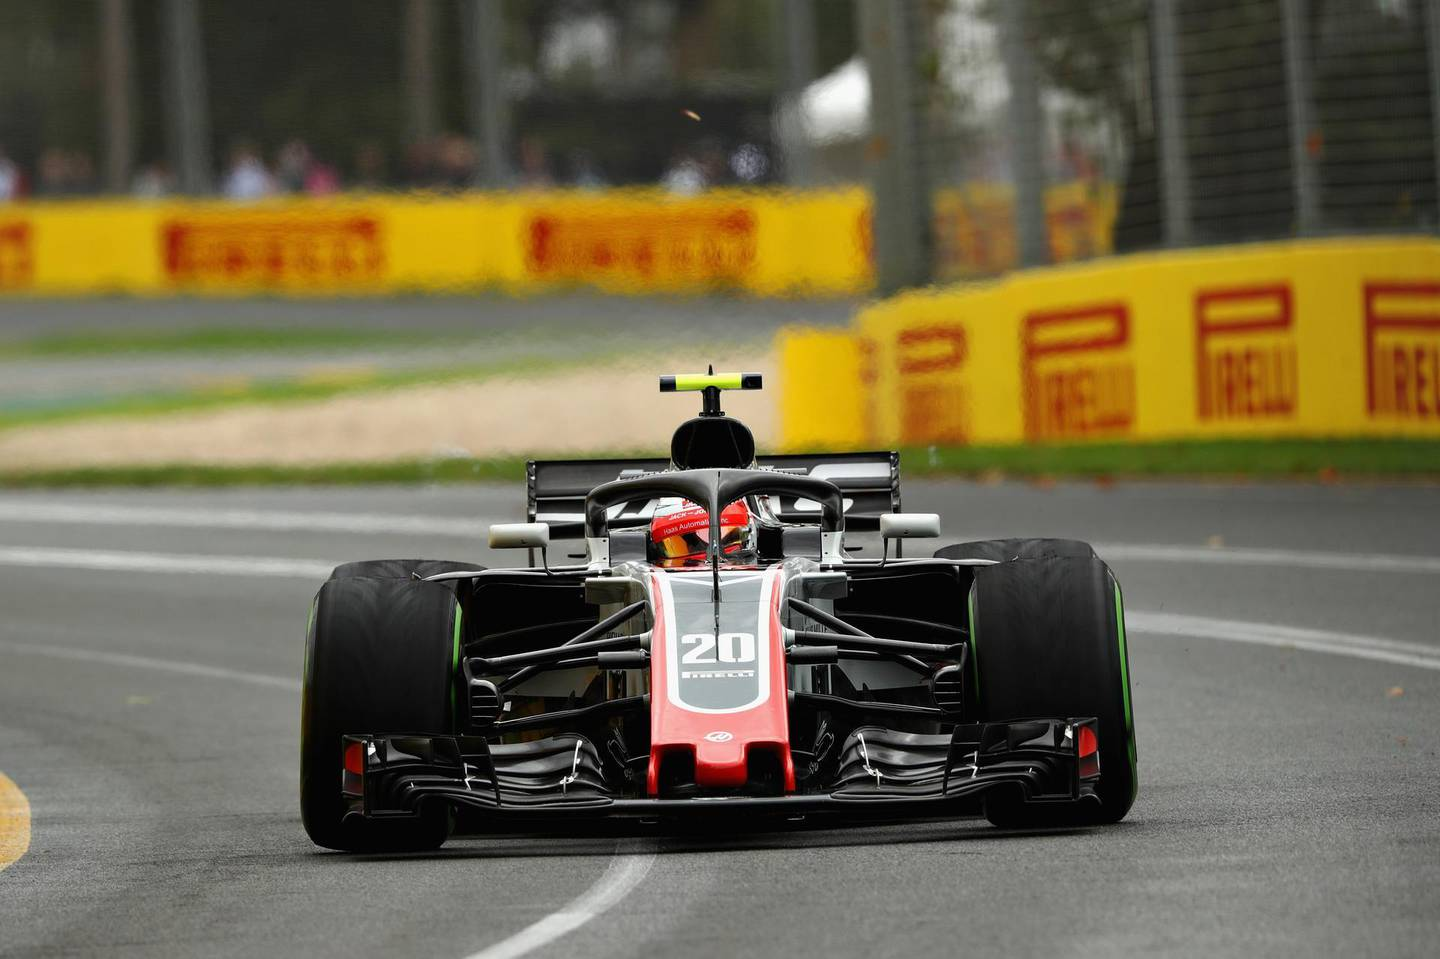 MELBOURNE, AUSTRALIA - MARCH 24: Kevin Magnussen of Denmark driving the (20) Haas F1 Team VF-18 Ferrari on track during final practice for the Australian Formula One Grand Prix at Albert Park on March 24, 2018 in Melbourne, Australia.  (Photo by Robert Cianflone/Getty Images)